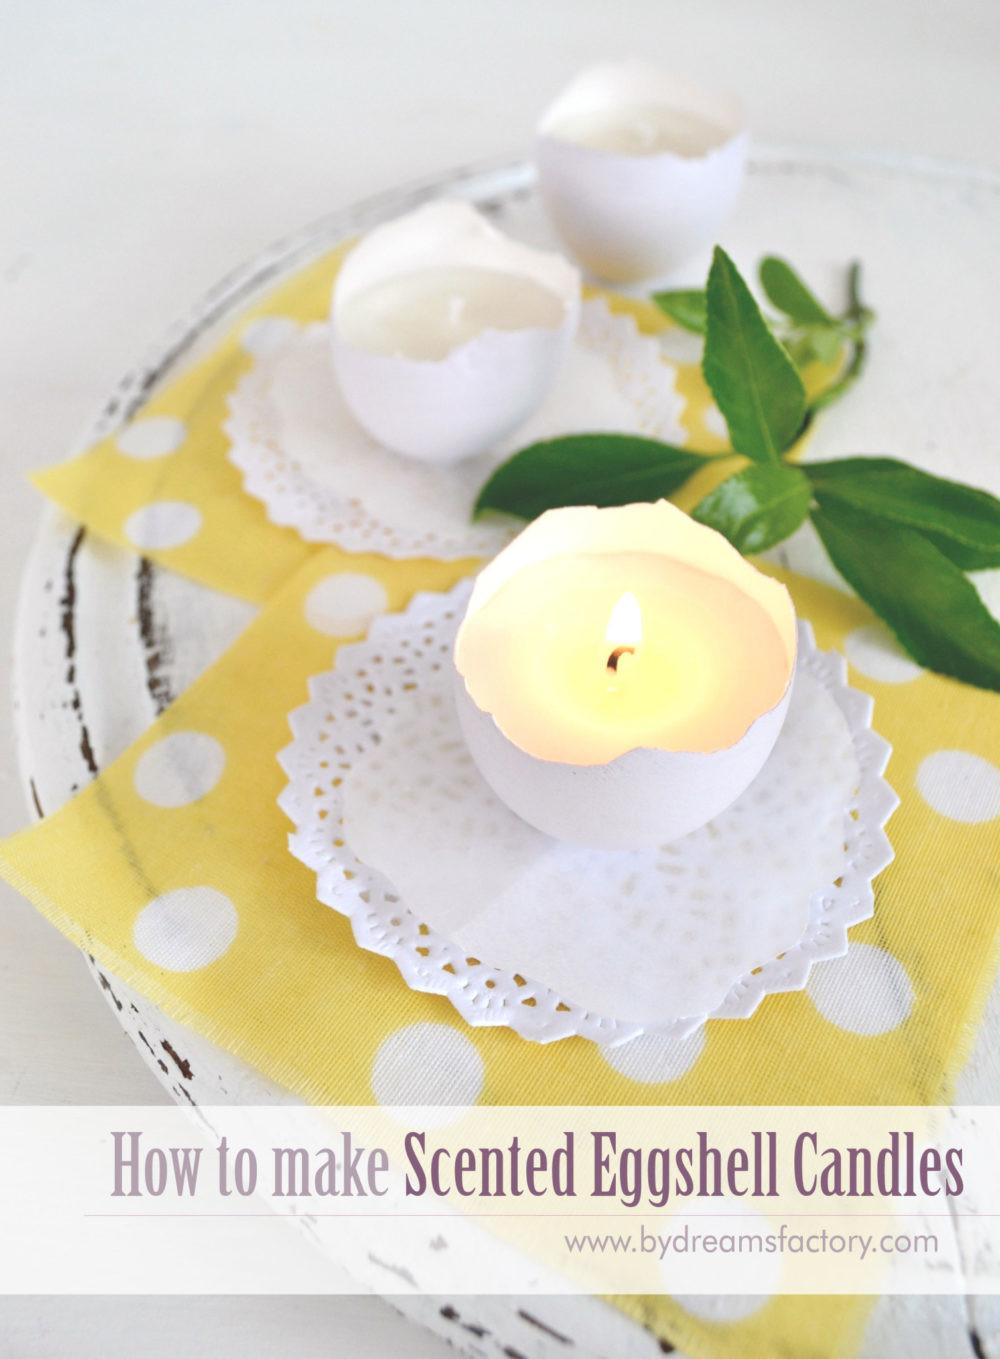 Make Scented Eggshell Candles Dreams Factory